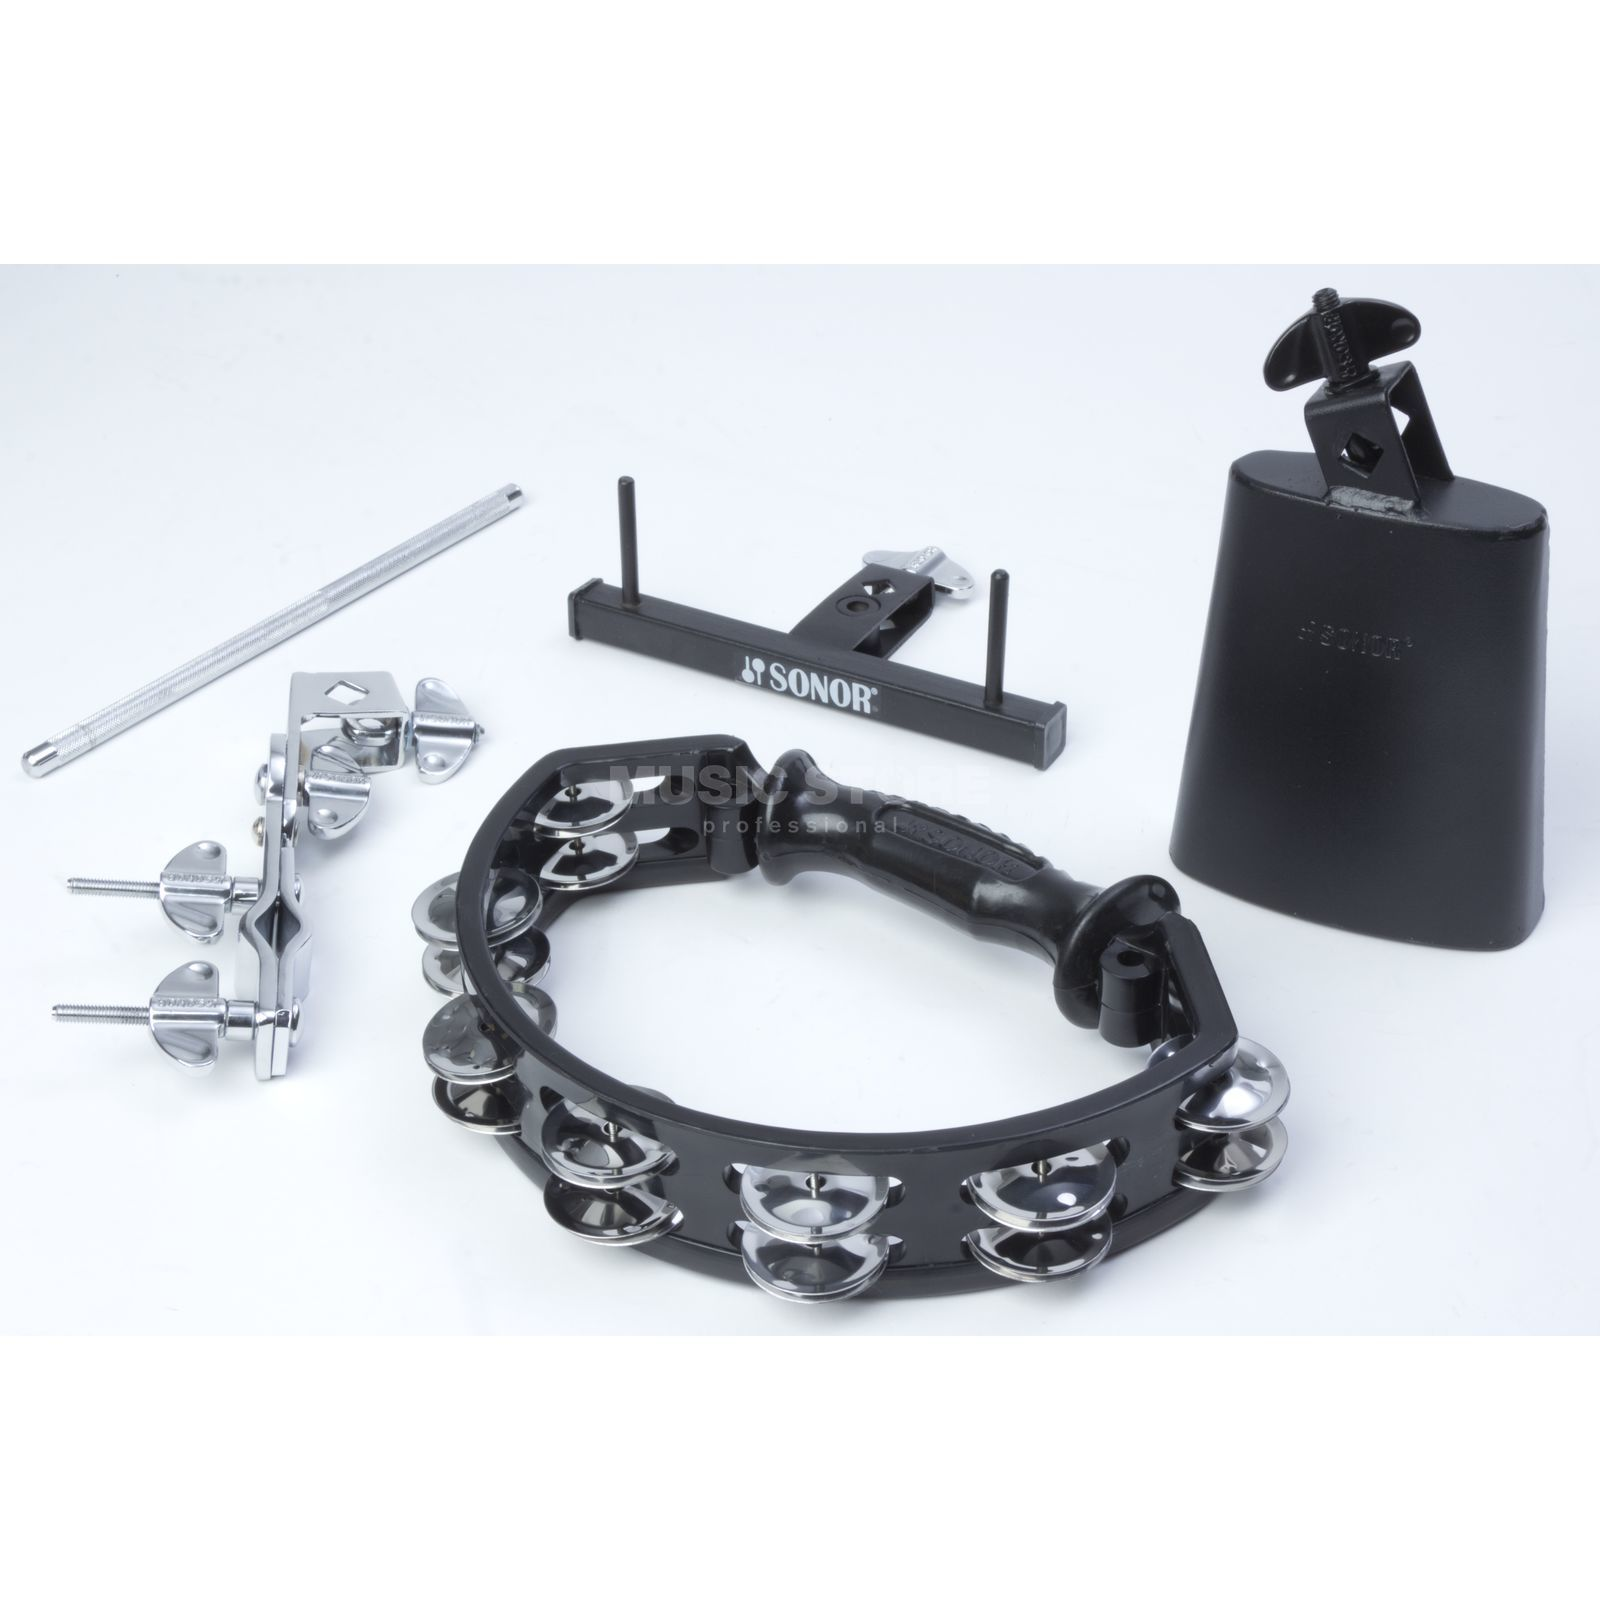 Sonor RHYTHM Add-on Package Cowbell, Tambourine, Holders Product Image